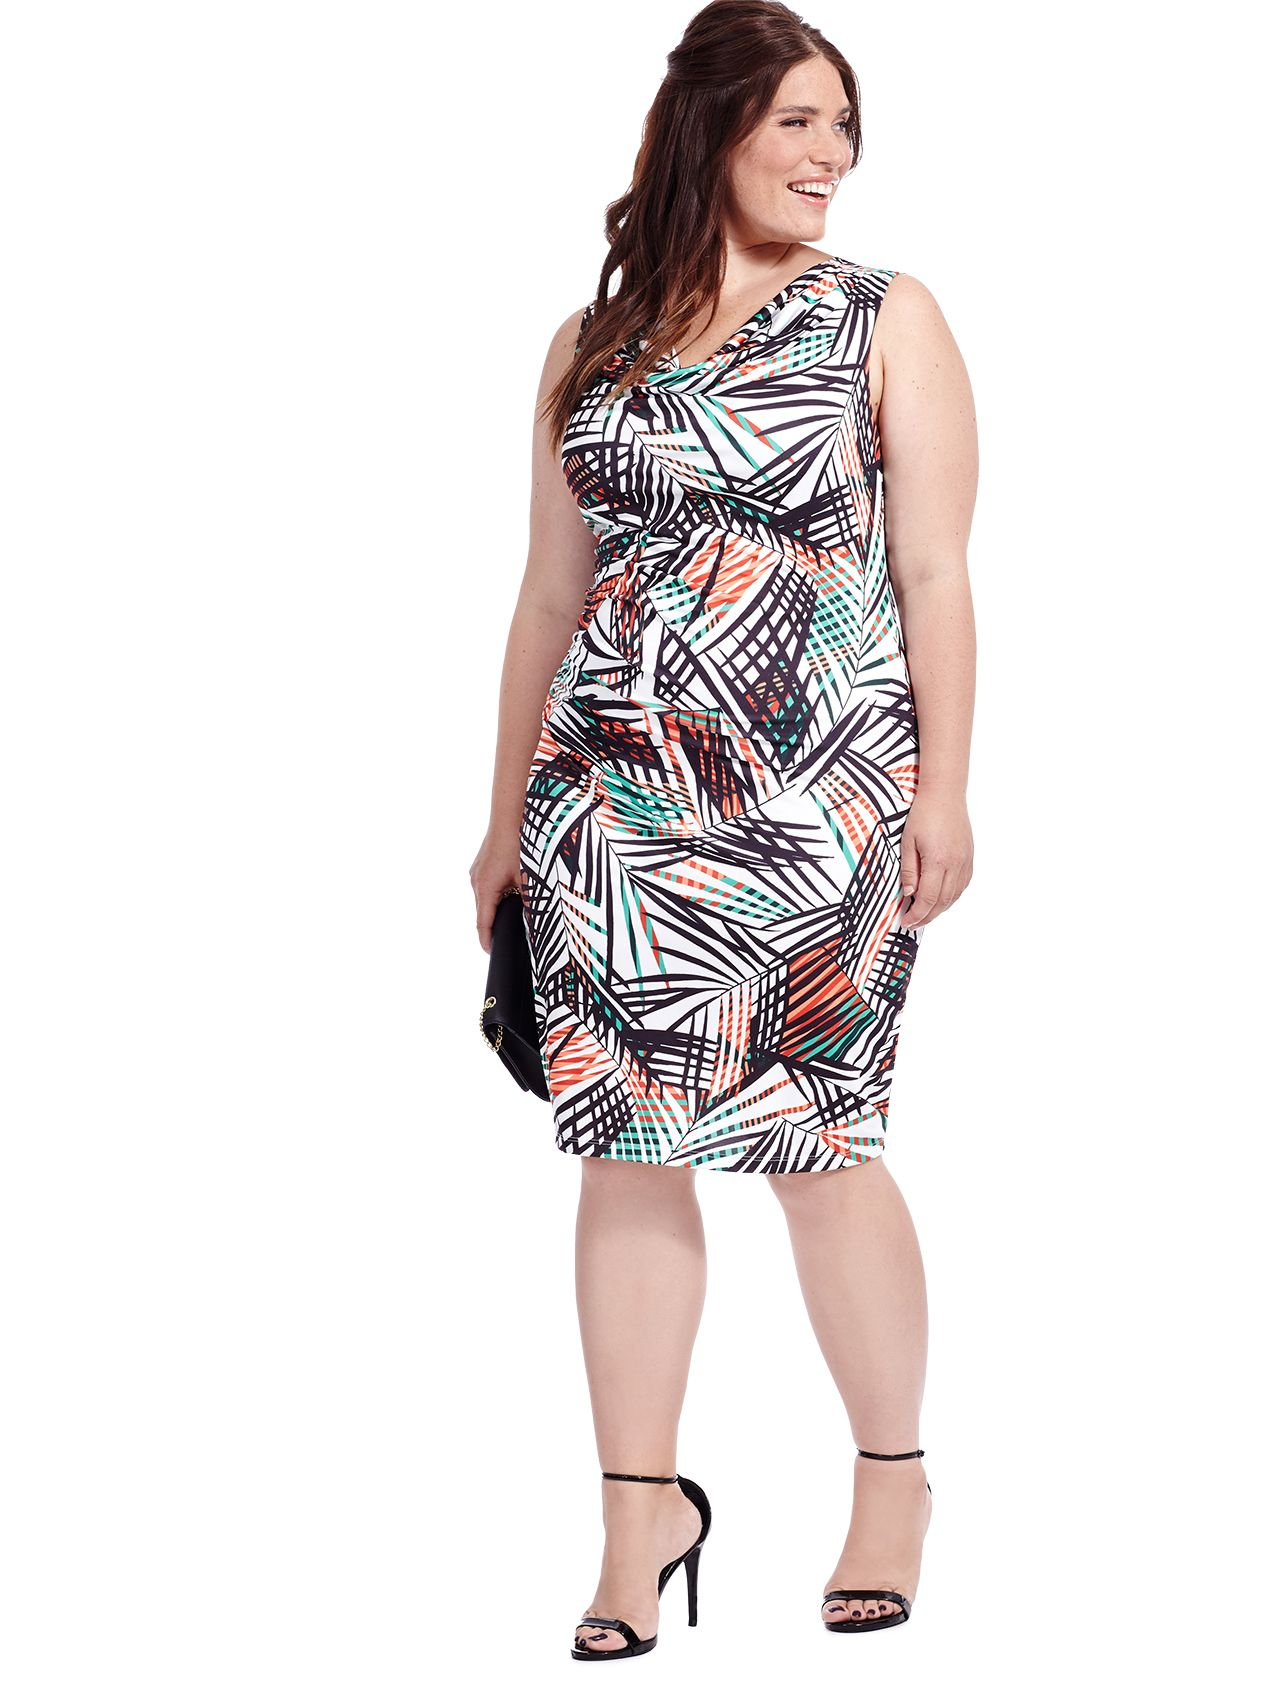 2844d6ec6a2 Tropical Fern Ruched Dress by Triste Available in sizes 0X-5X ...